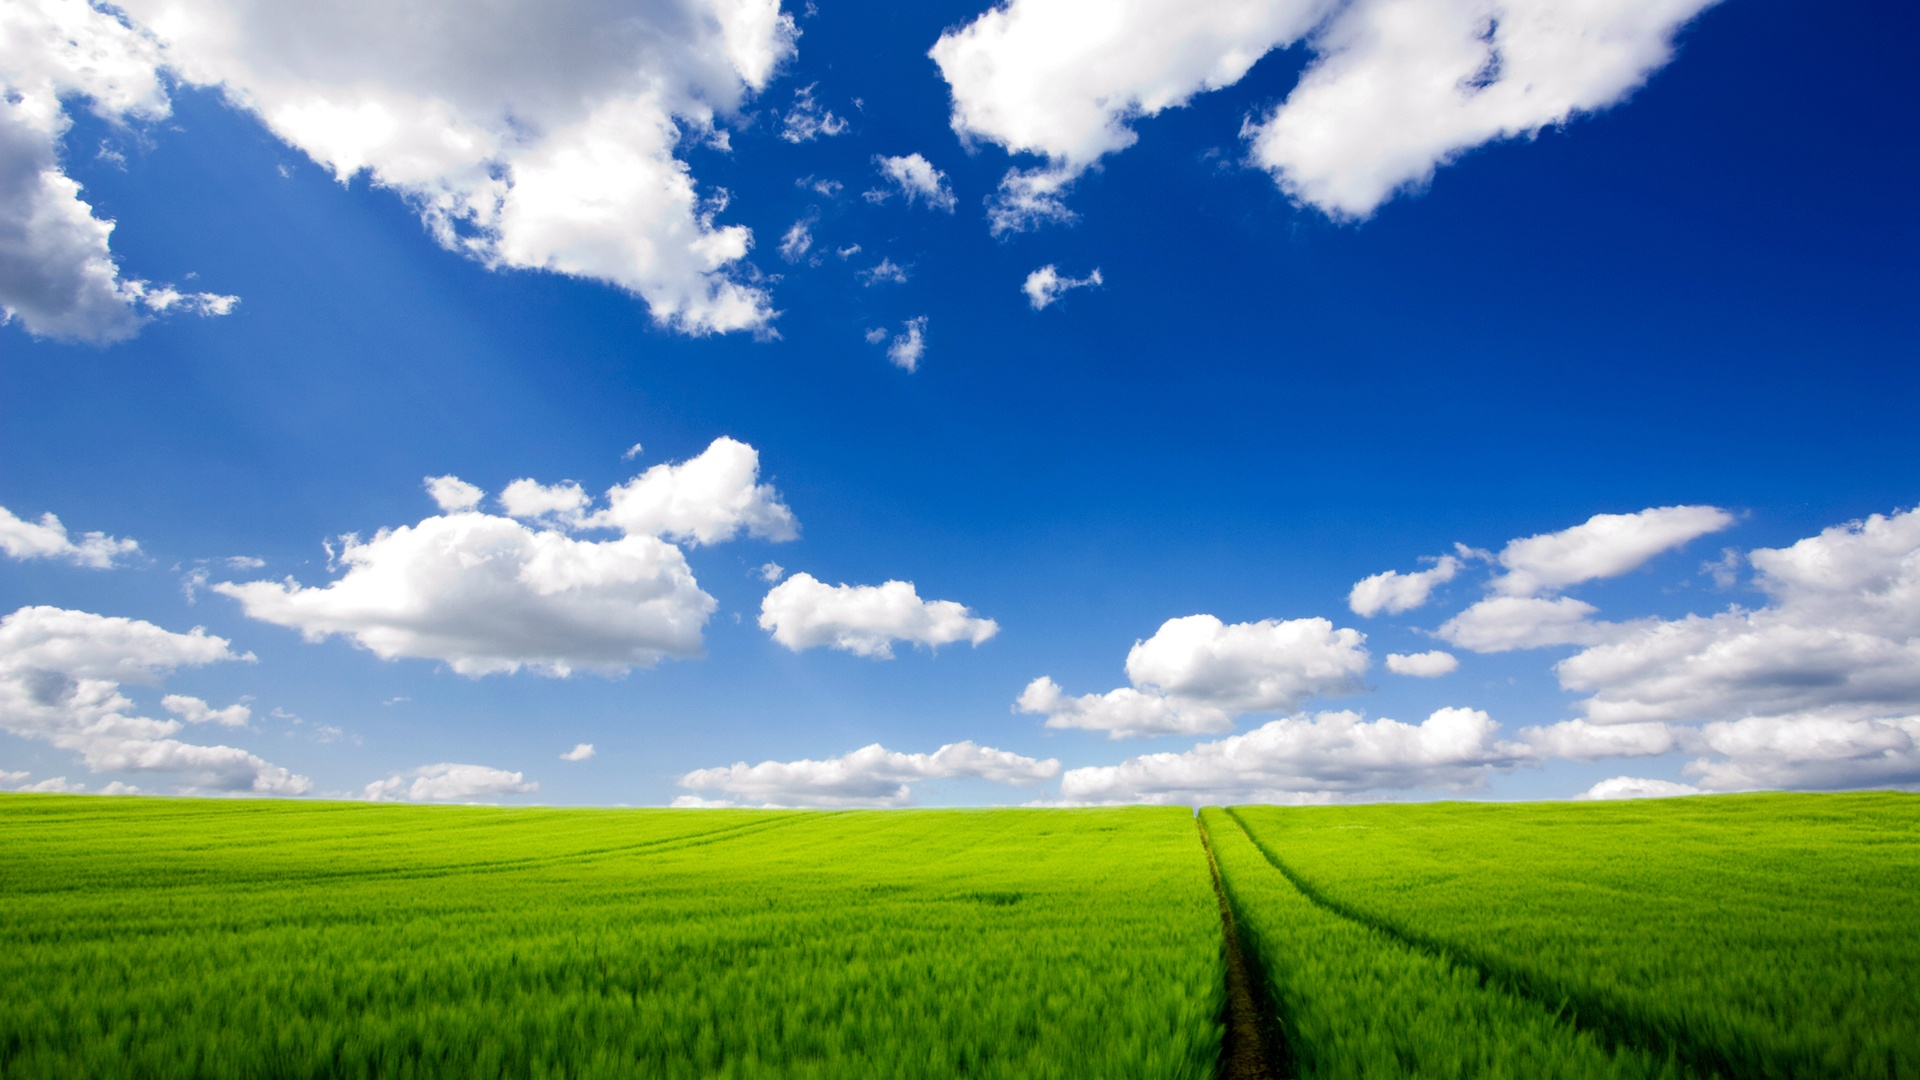 Windows XP Wallpapers 4